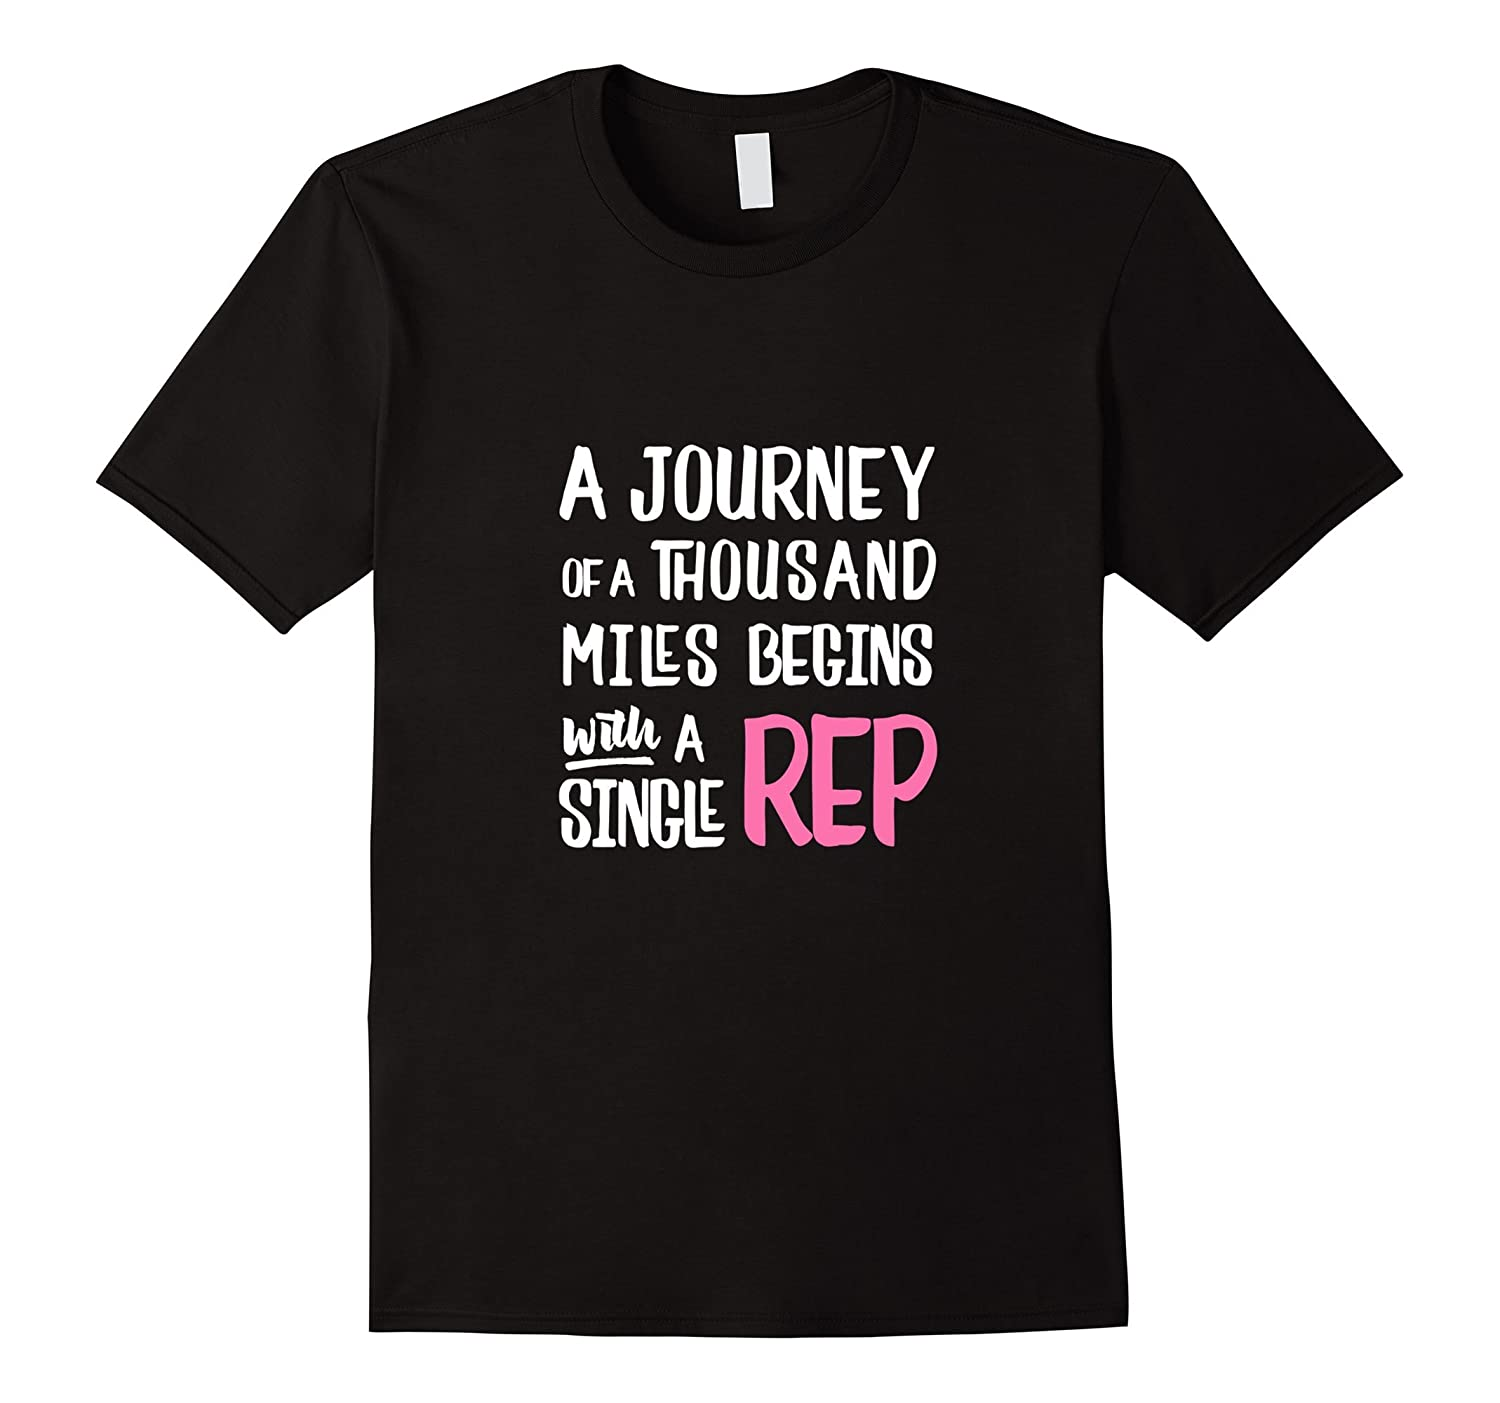 A Journey Of A Thousand Miles Womens Workout Tee-Vaci